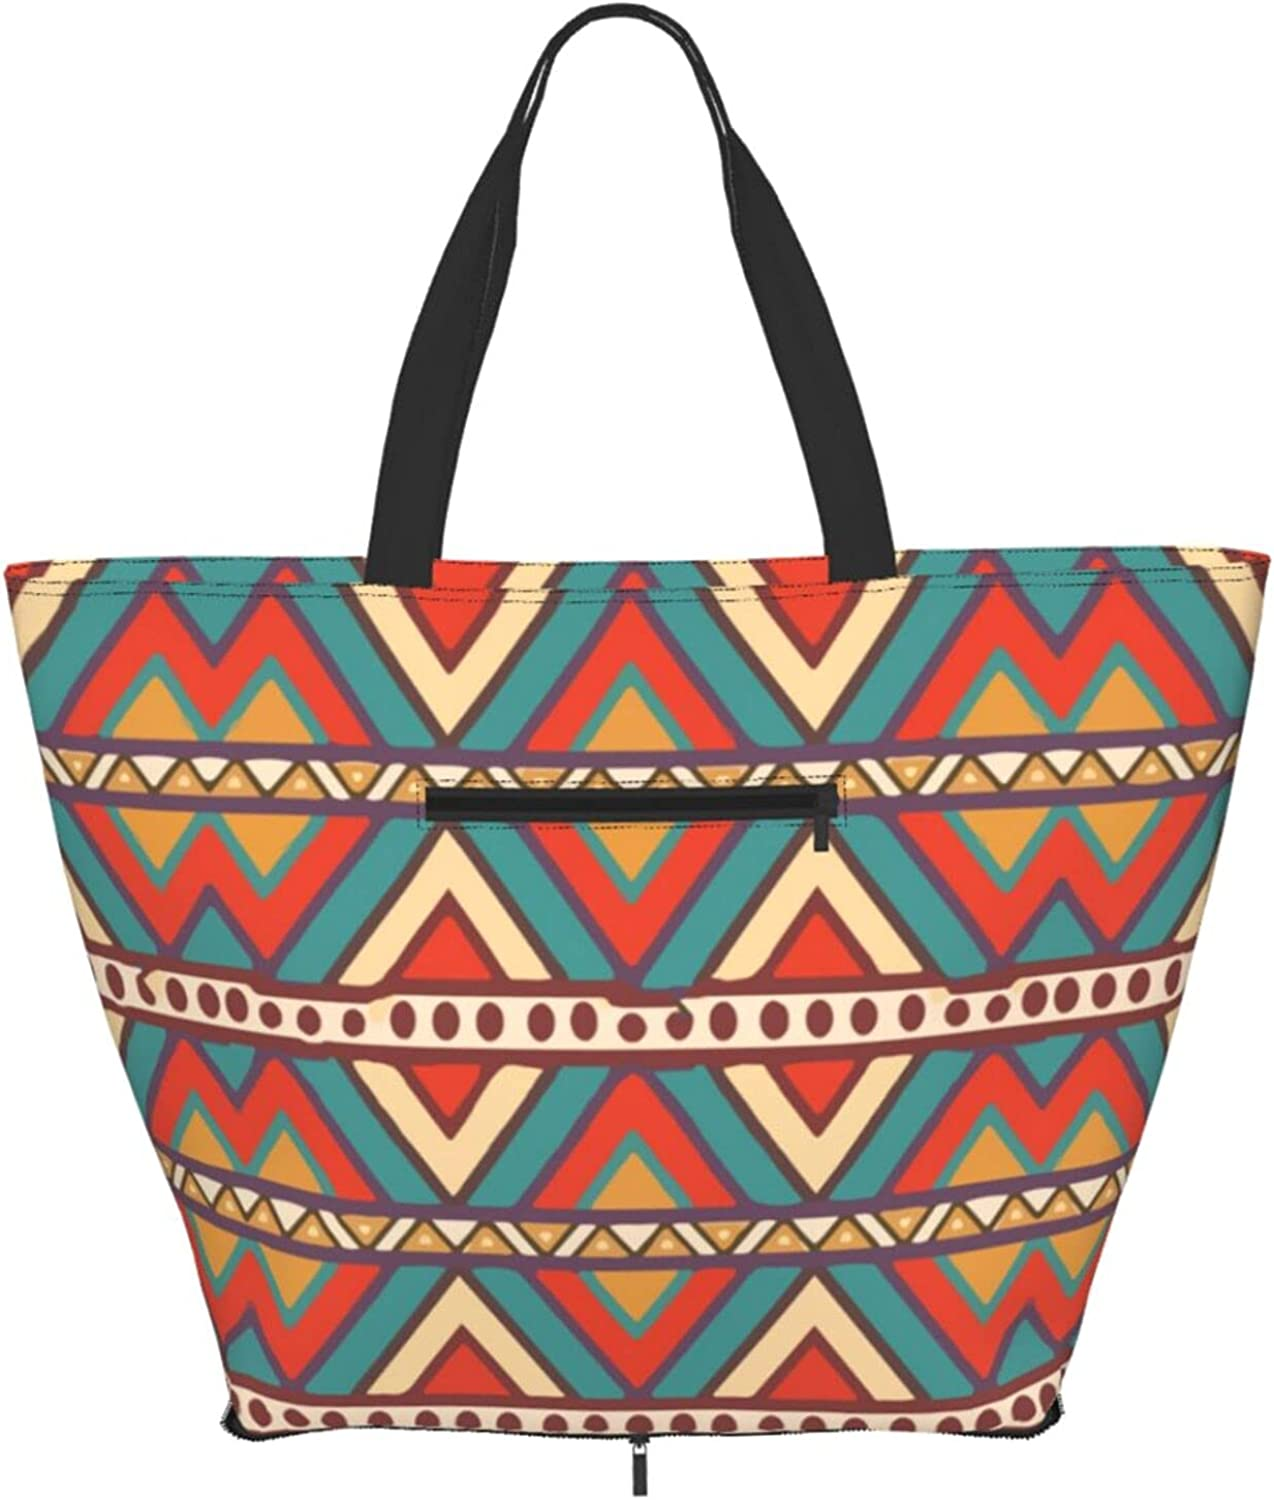 Shoulder Tote Bag Africa Aztec Handle Satchel Pattern Special sale item Sales of SALE items from new works Purse Top